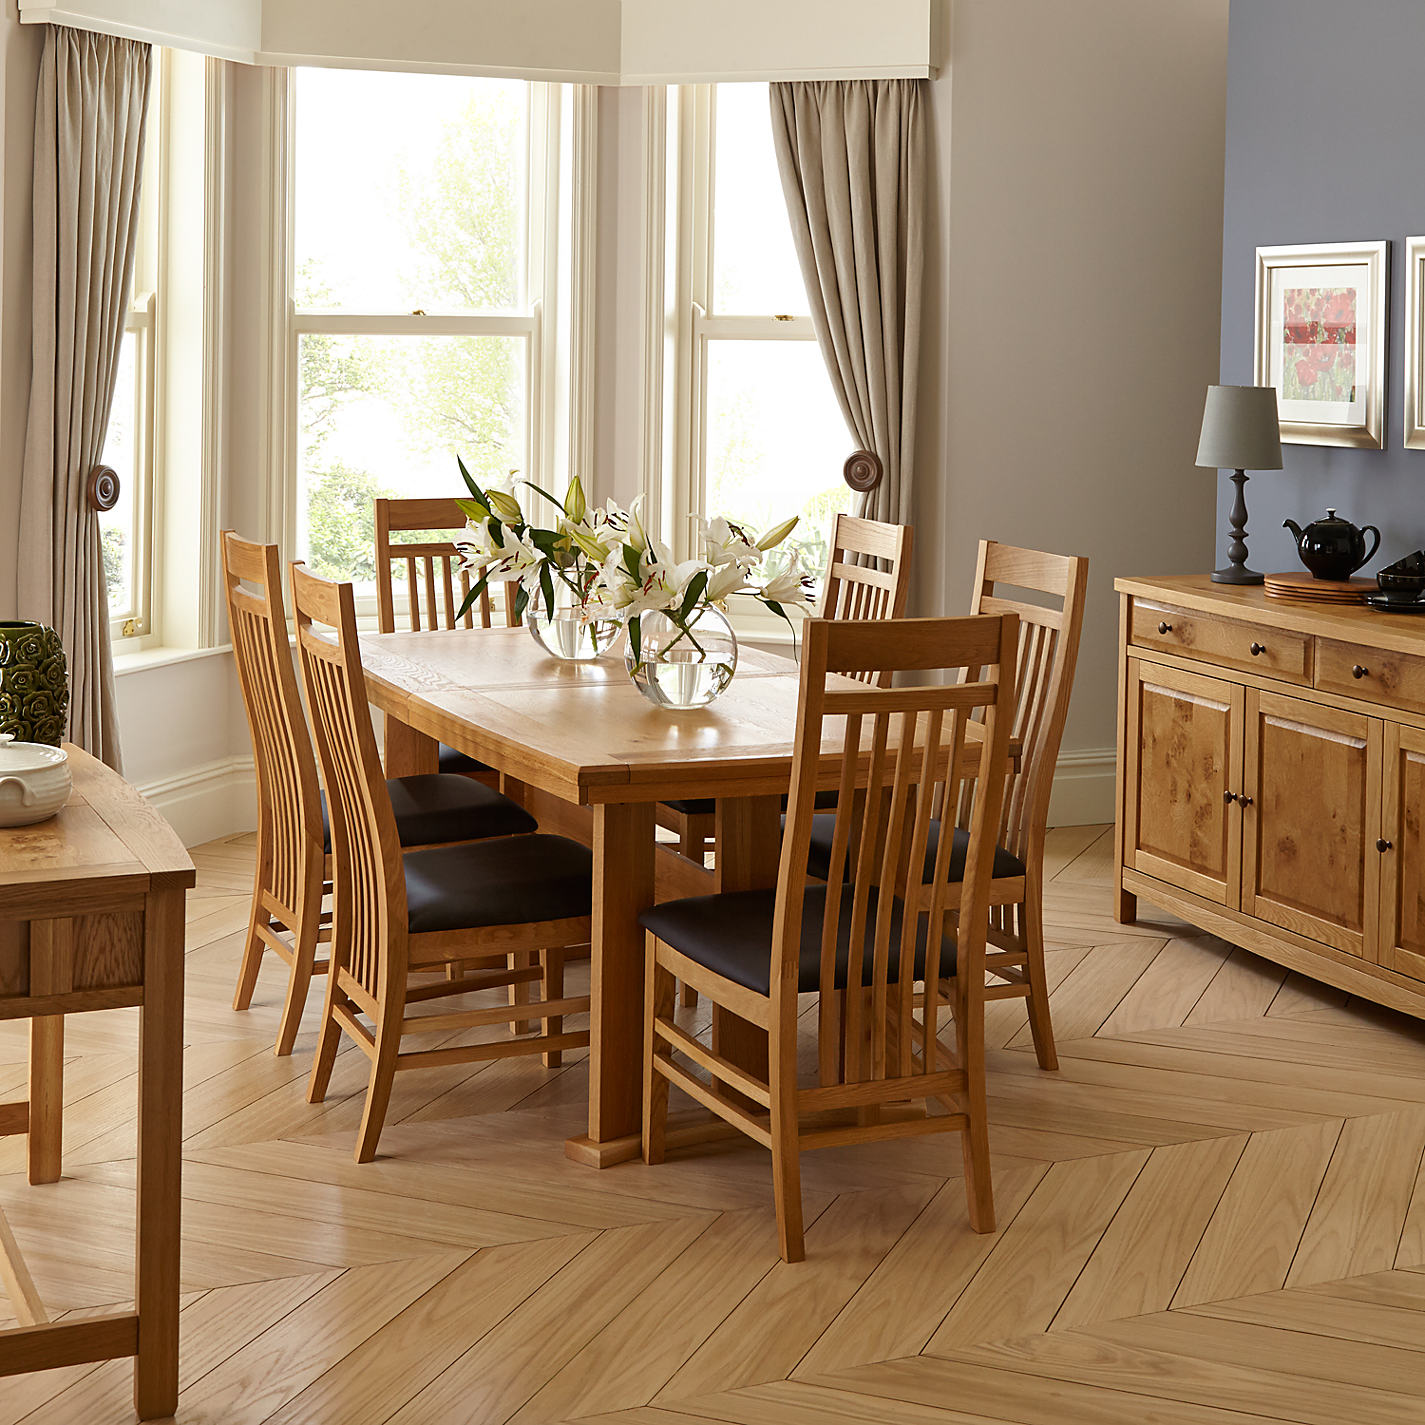 Buy John Lewis Burford Extending 6 8 Seater Dining Table Online At Johnlewis